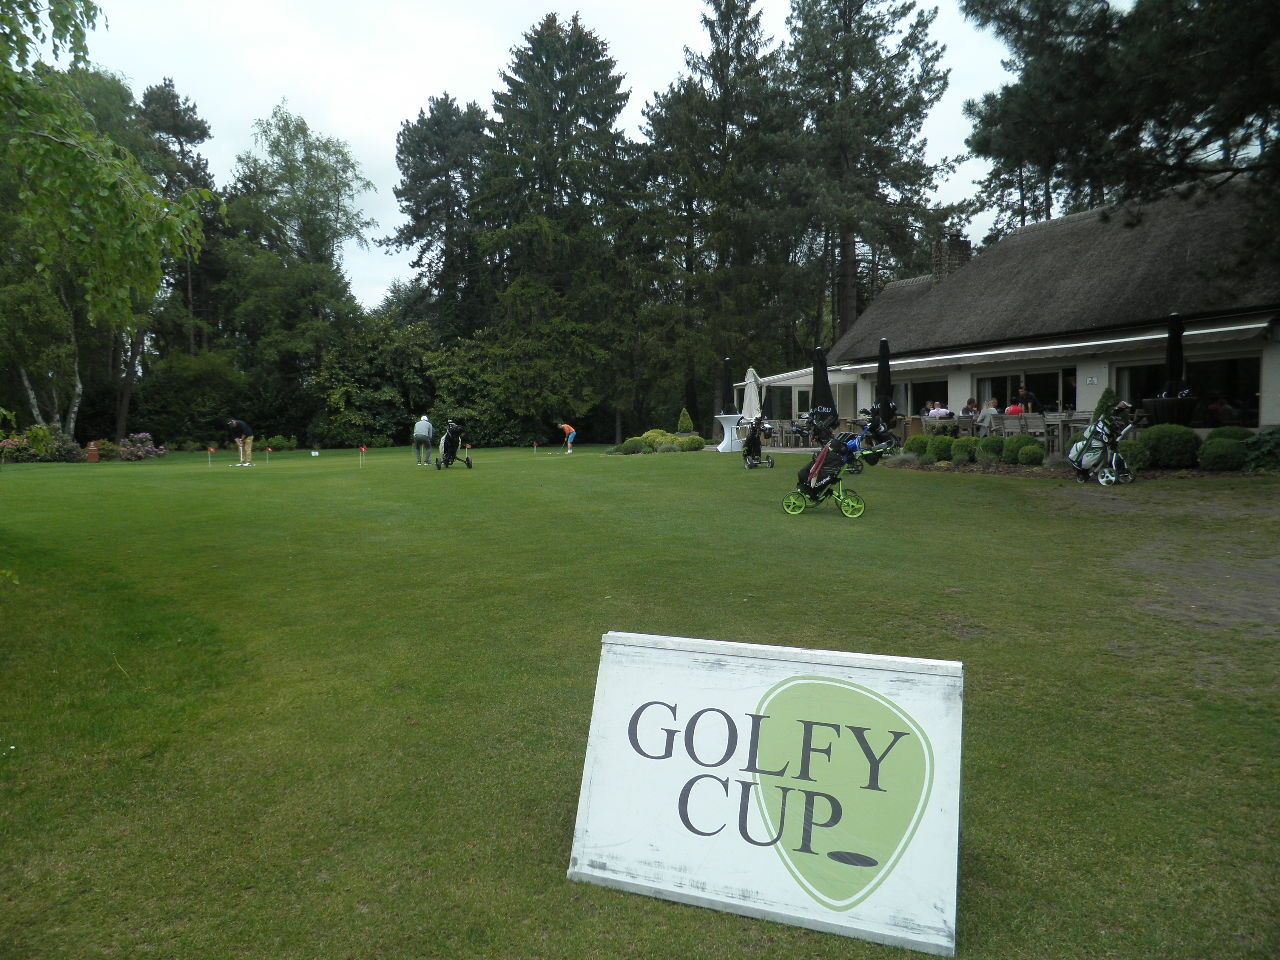 Royal Hainaut opent Golfy Cup 2017